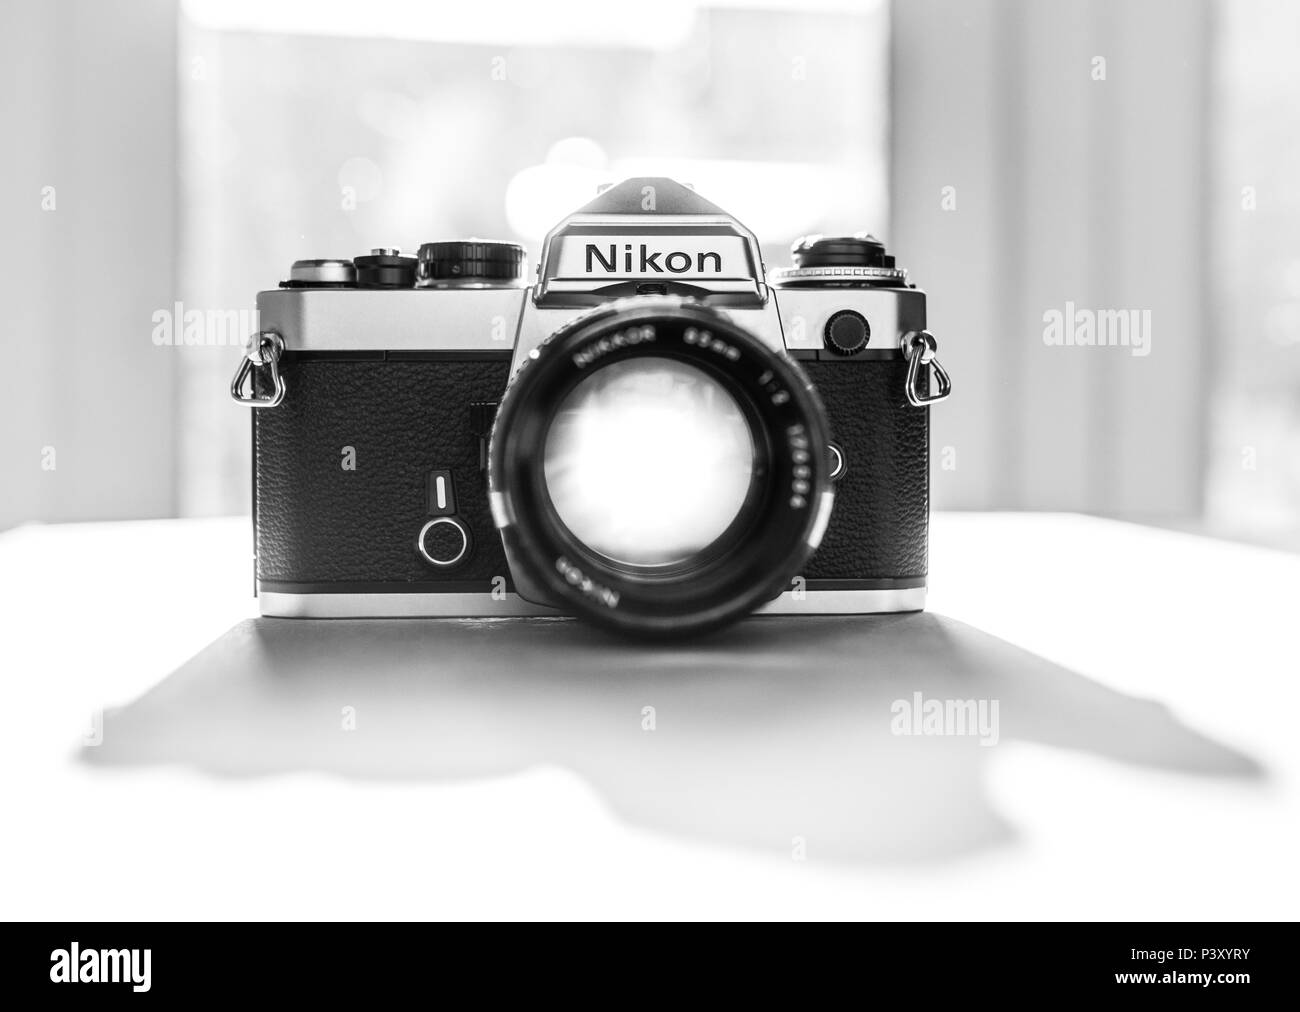 Nikon FE single lens reflex 35mm professional film camera, First launched in 1978 and remained in production until 1983. - Stock Image